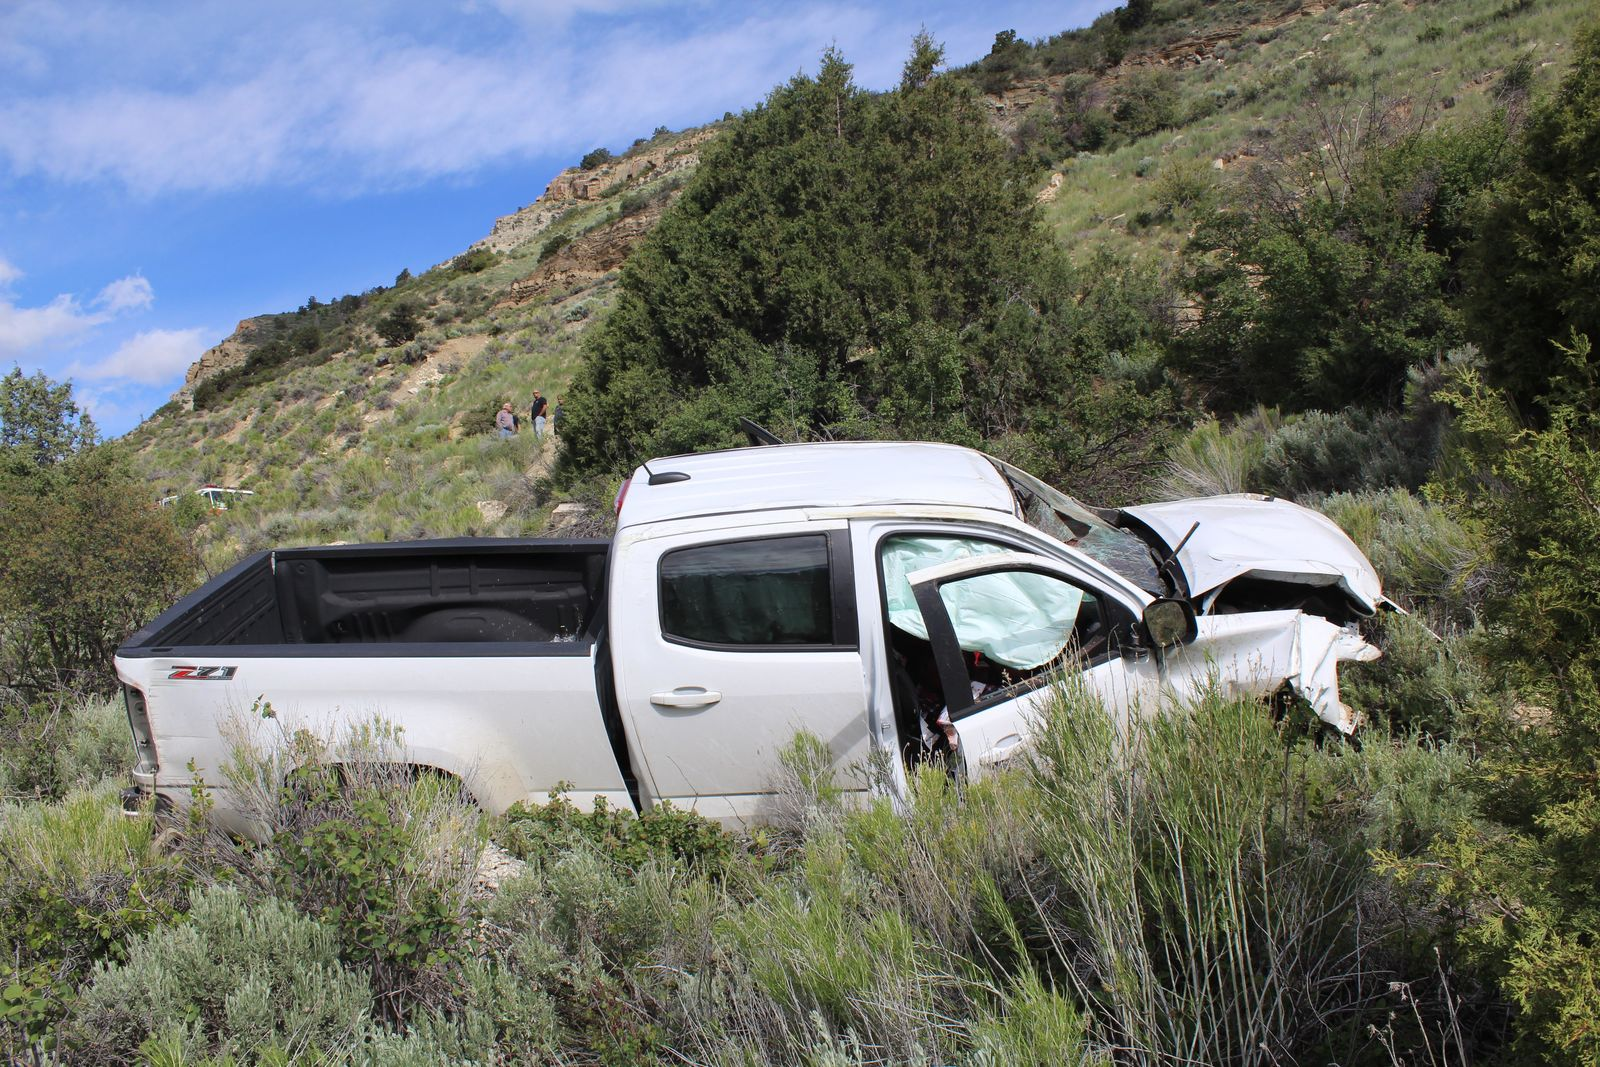 Man dies after driving vehicle off mountainside ledge in Duchesne County. (Photo: Utah Highway Patrol)